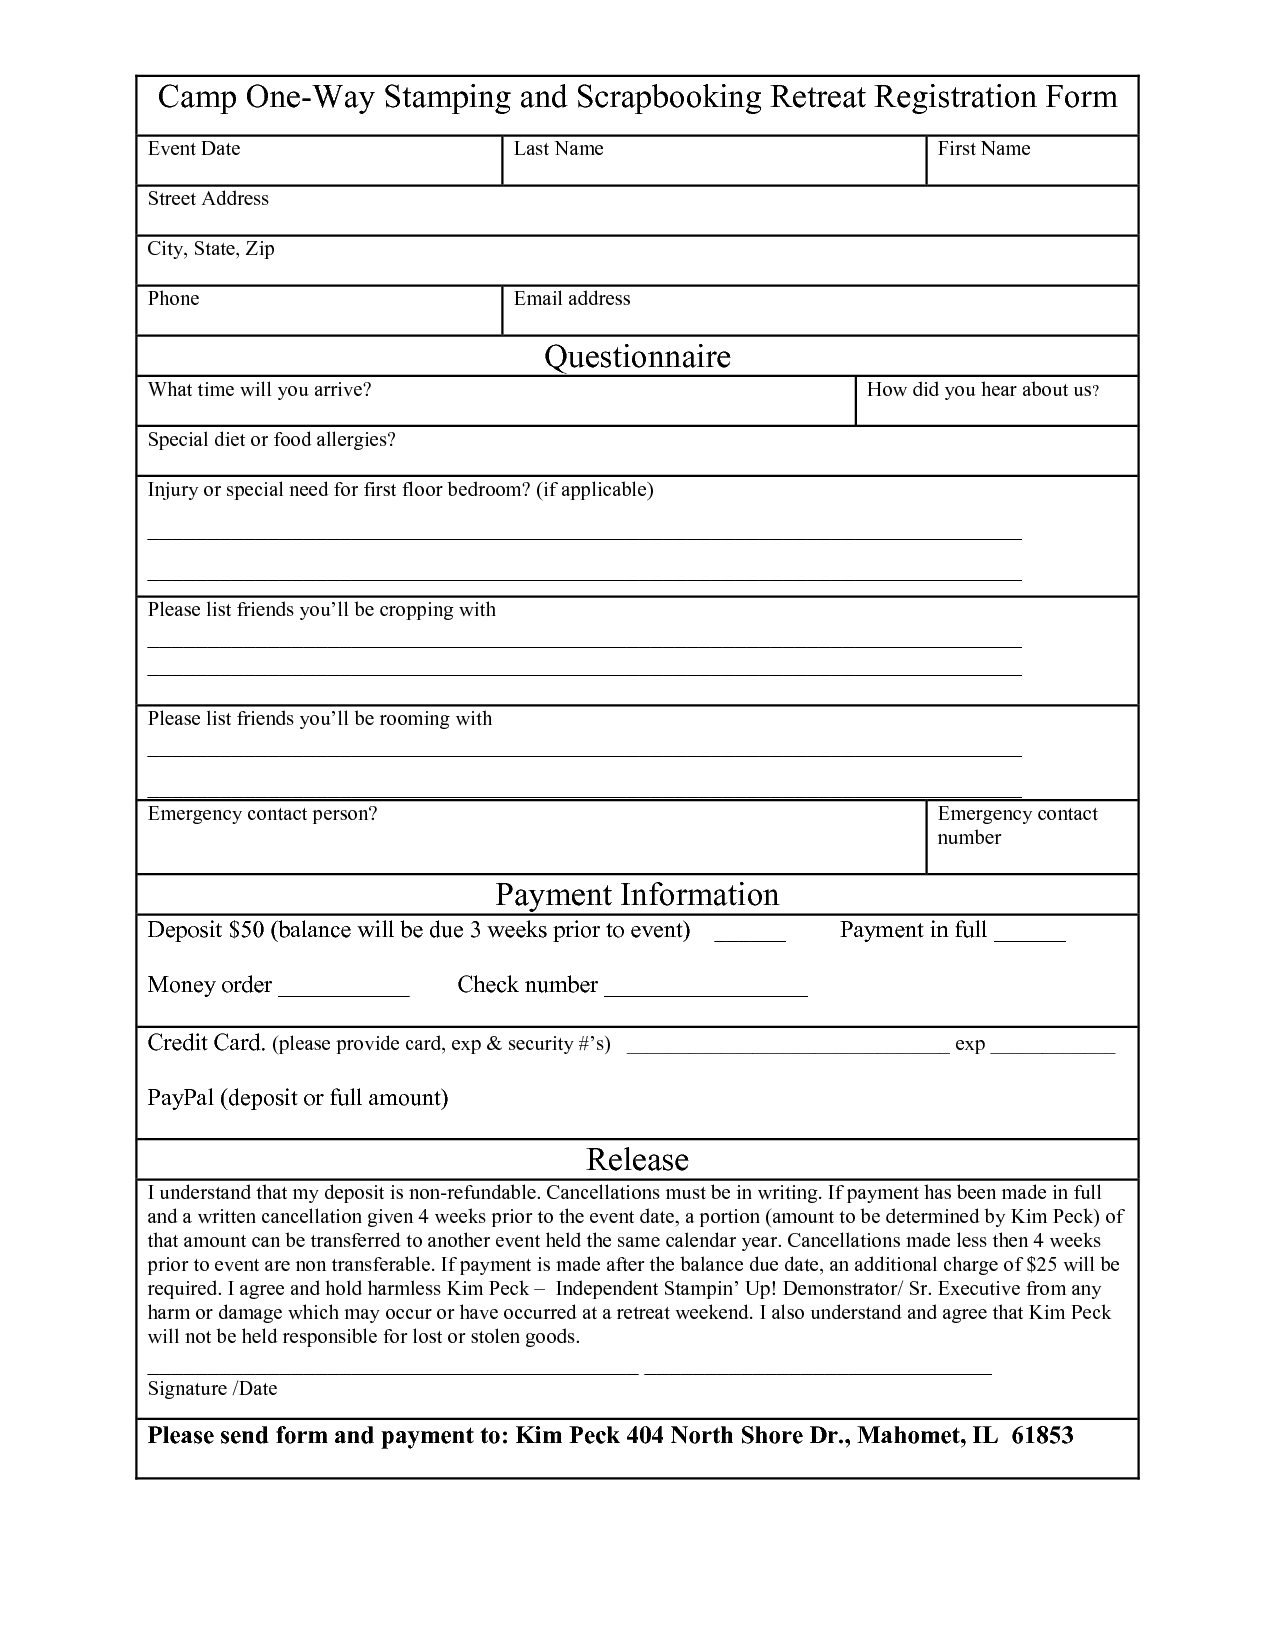 Free Registration Form Template Word Want a FREE refresher ...